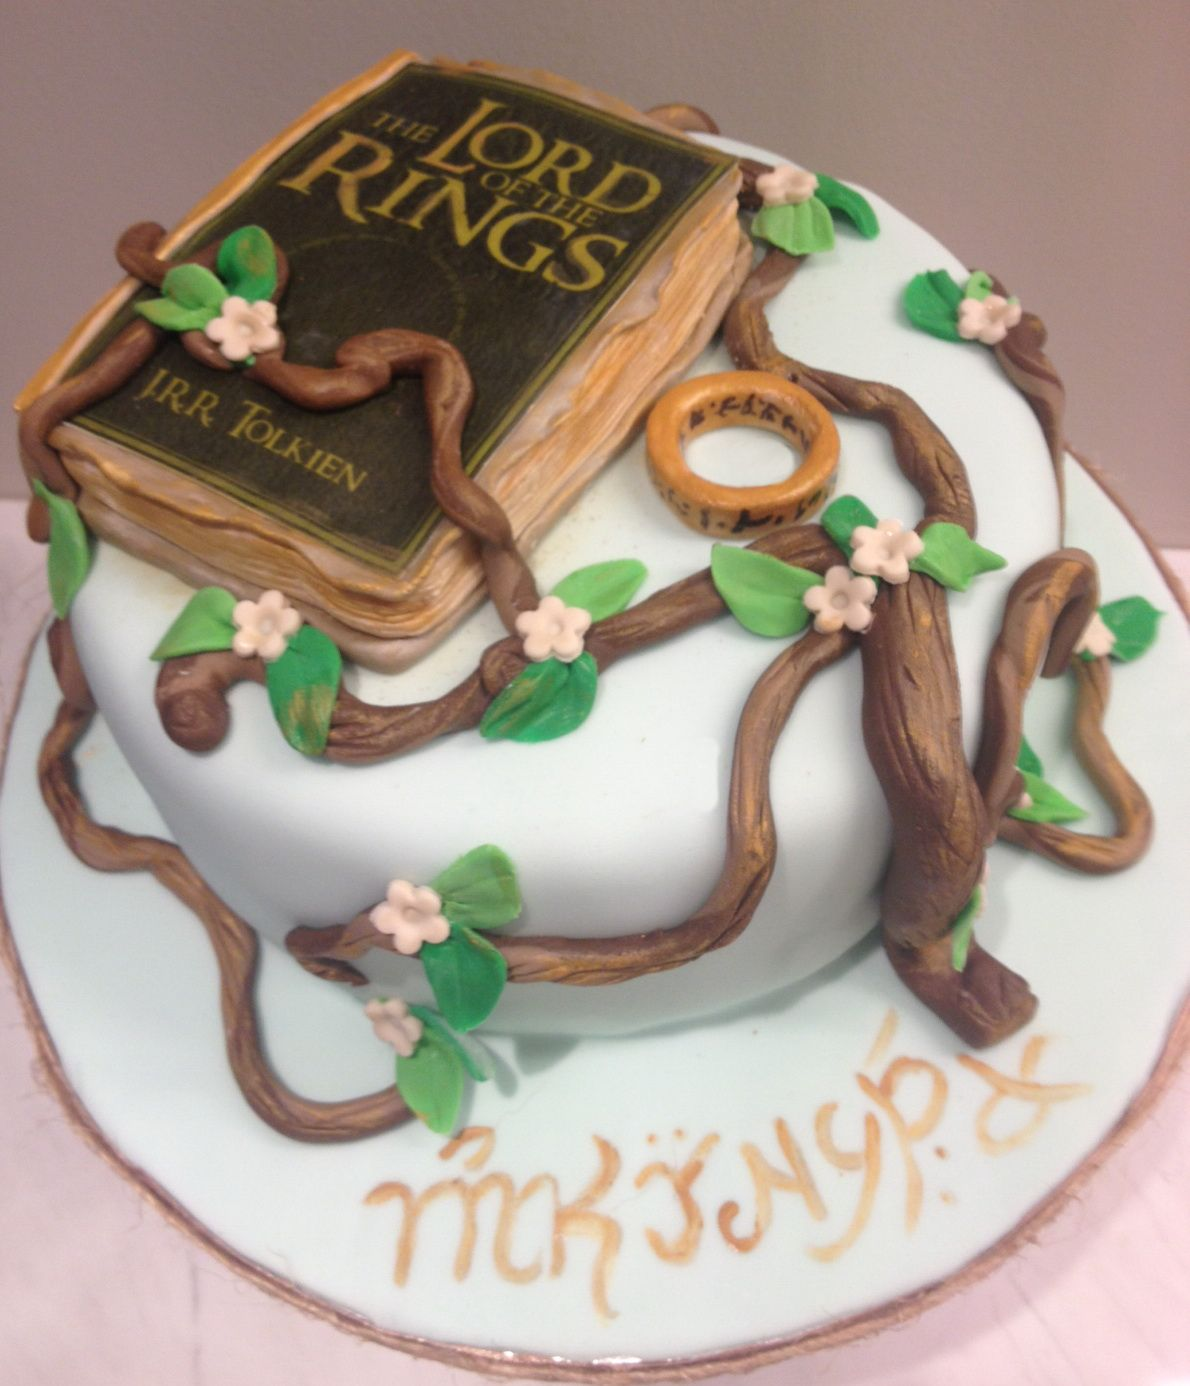 lord of the rings cake cake design ideas pinterest. Black Bedroom Furniture Sets. Home Design Ideas